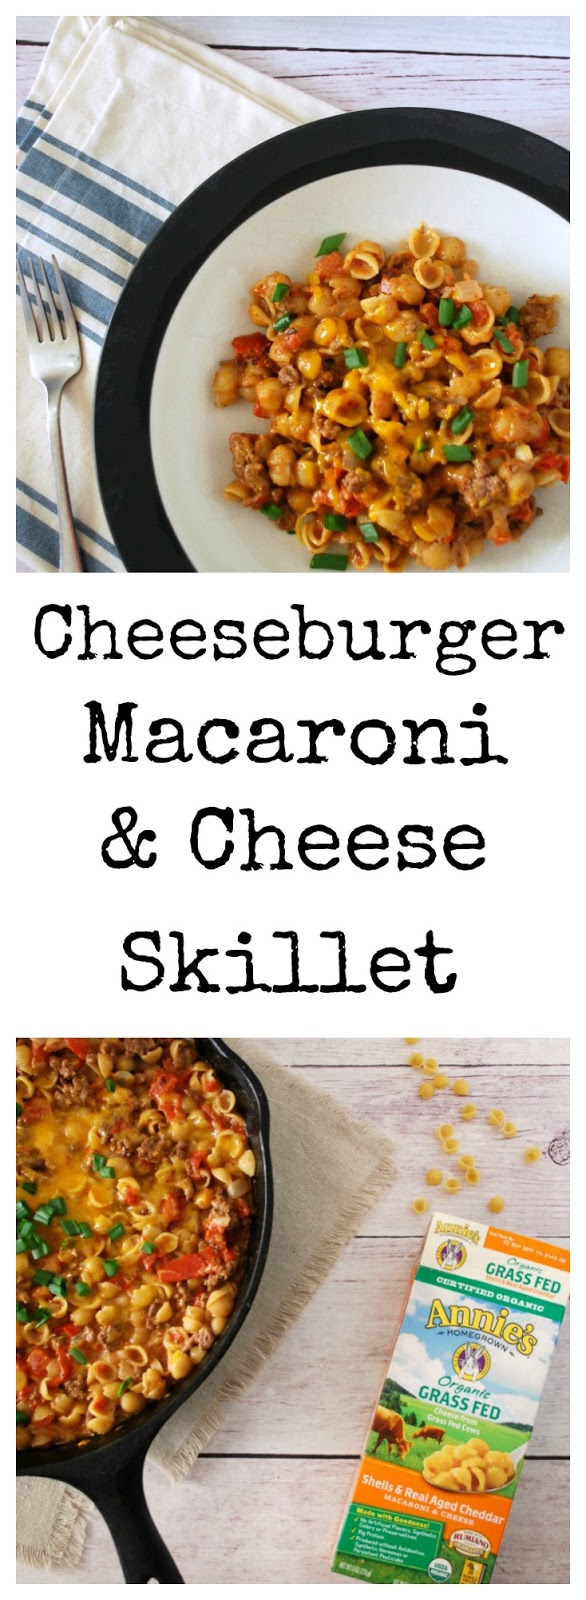 Cheeseburger Mac and Cheese Skillet